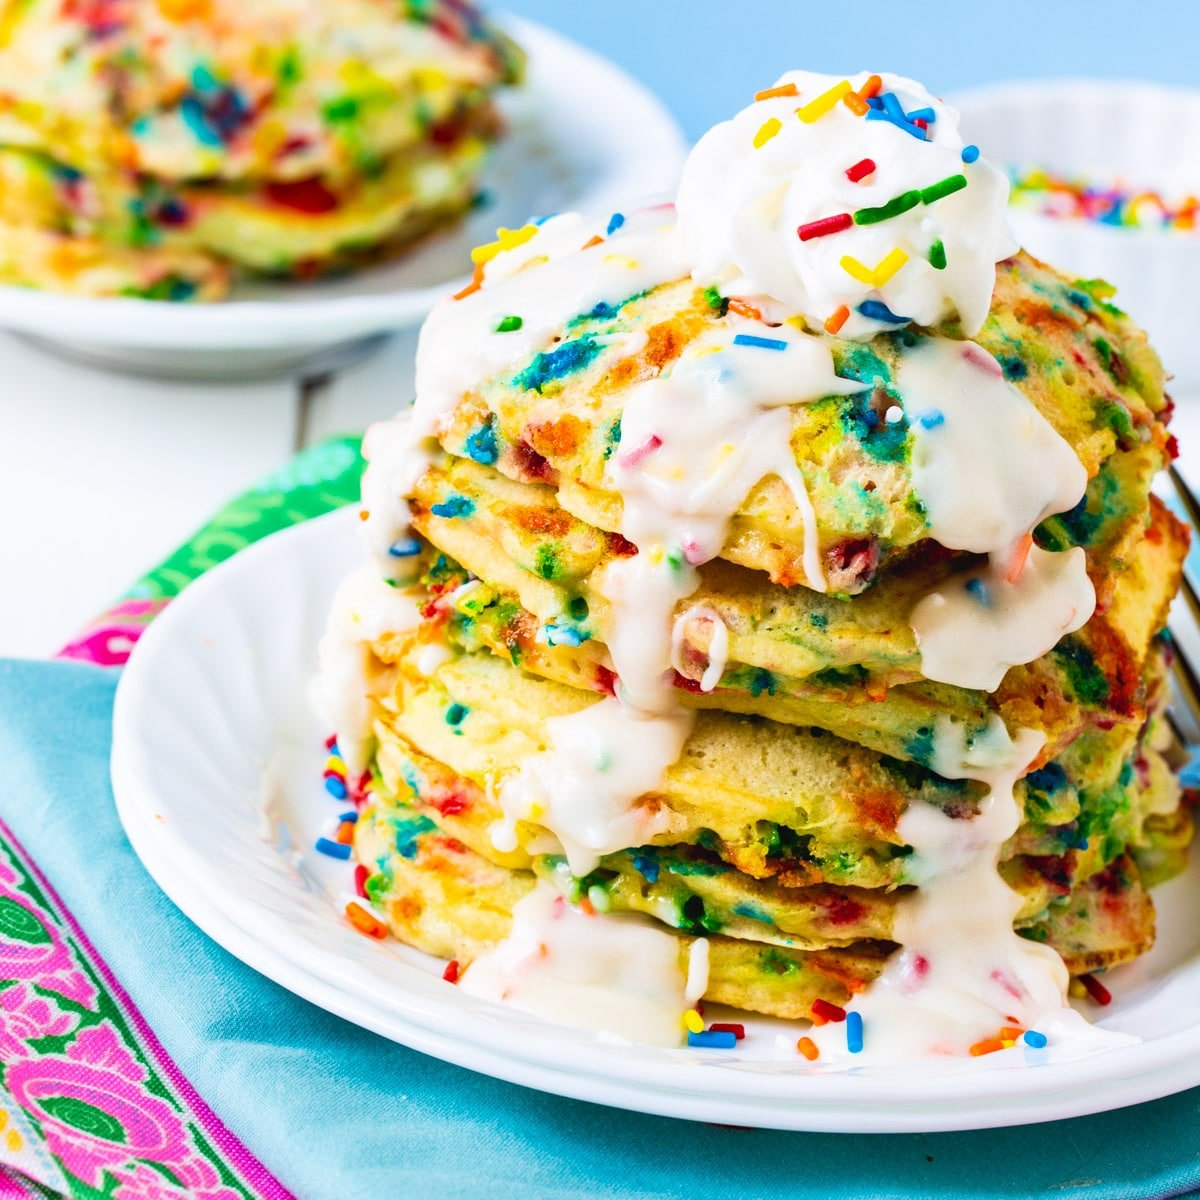 Cake Batter Pancakes stacked on a plate.